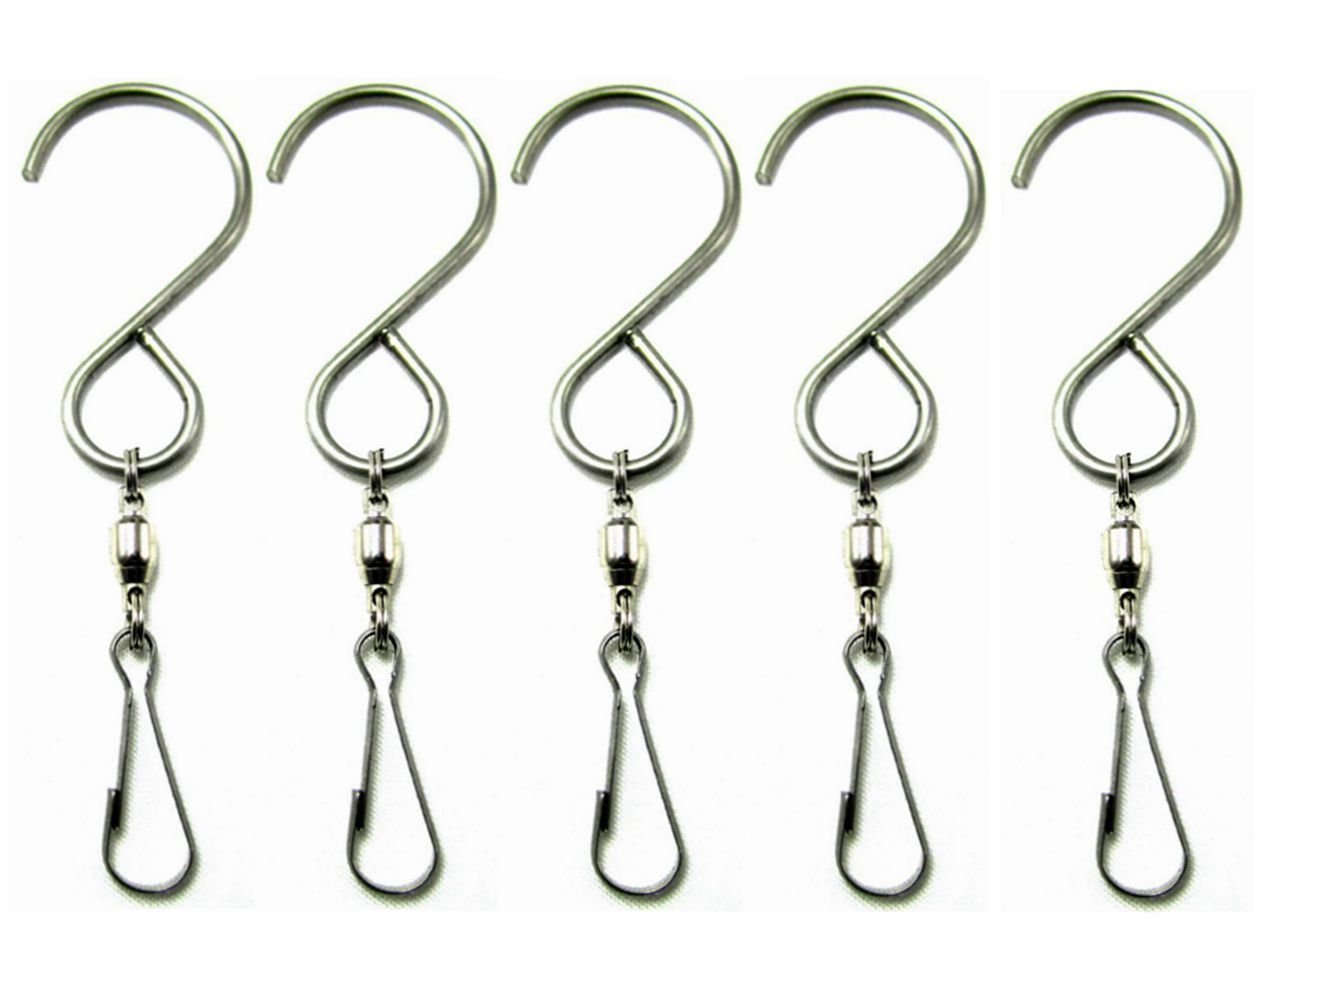 SUNREEK 8482;Smooth Spinning Swivel Hooks Clips for Hanging Wind Spinners Rotate Spiral Tail Crystal Twisters Party Supply(5 Pack) GG05